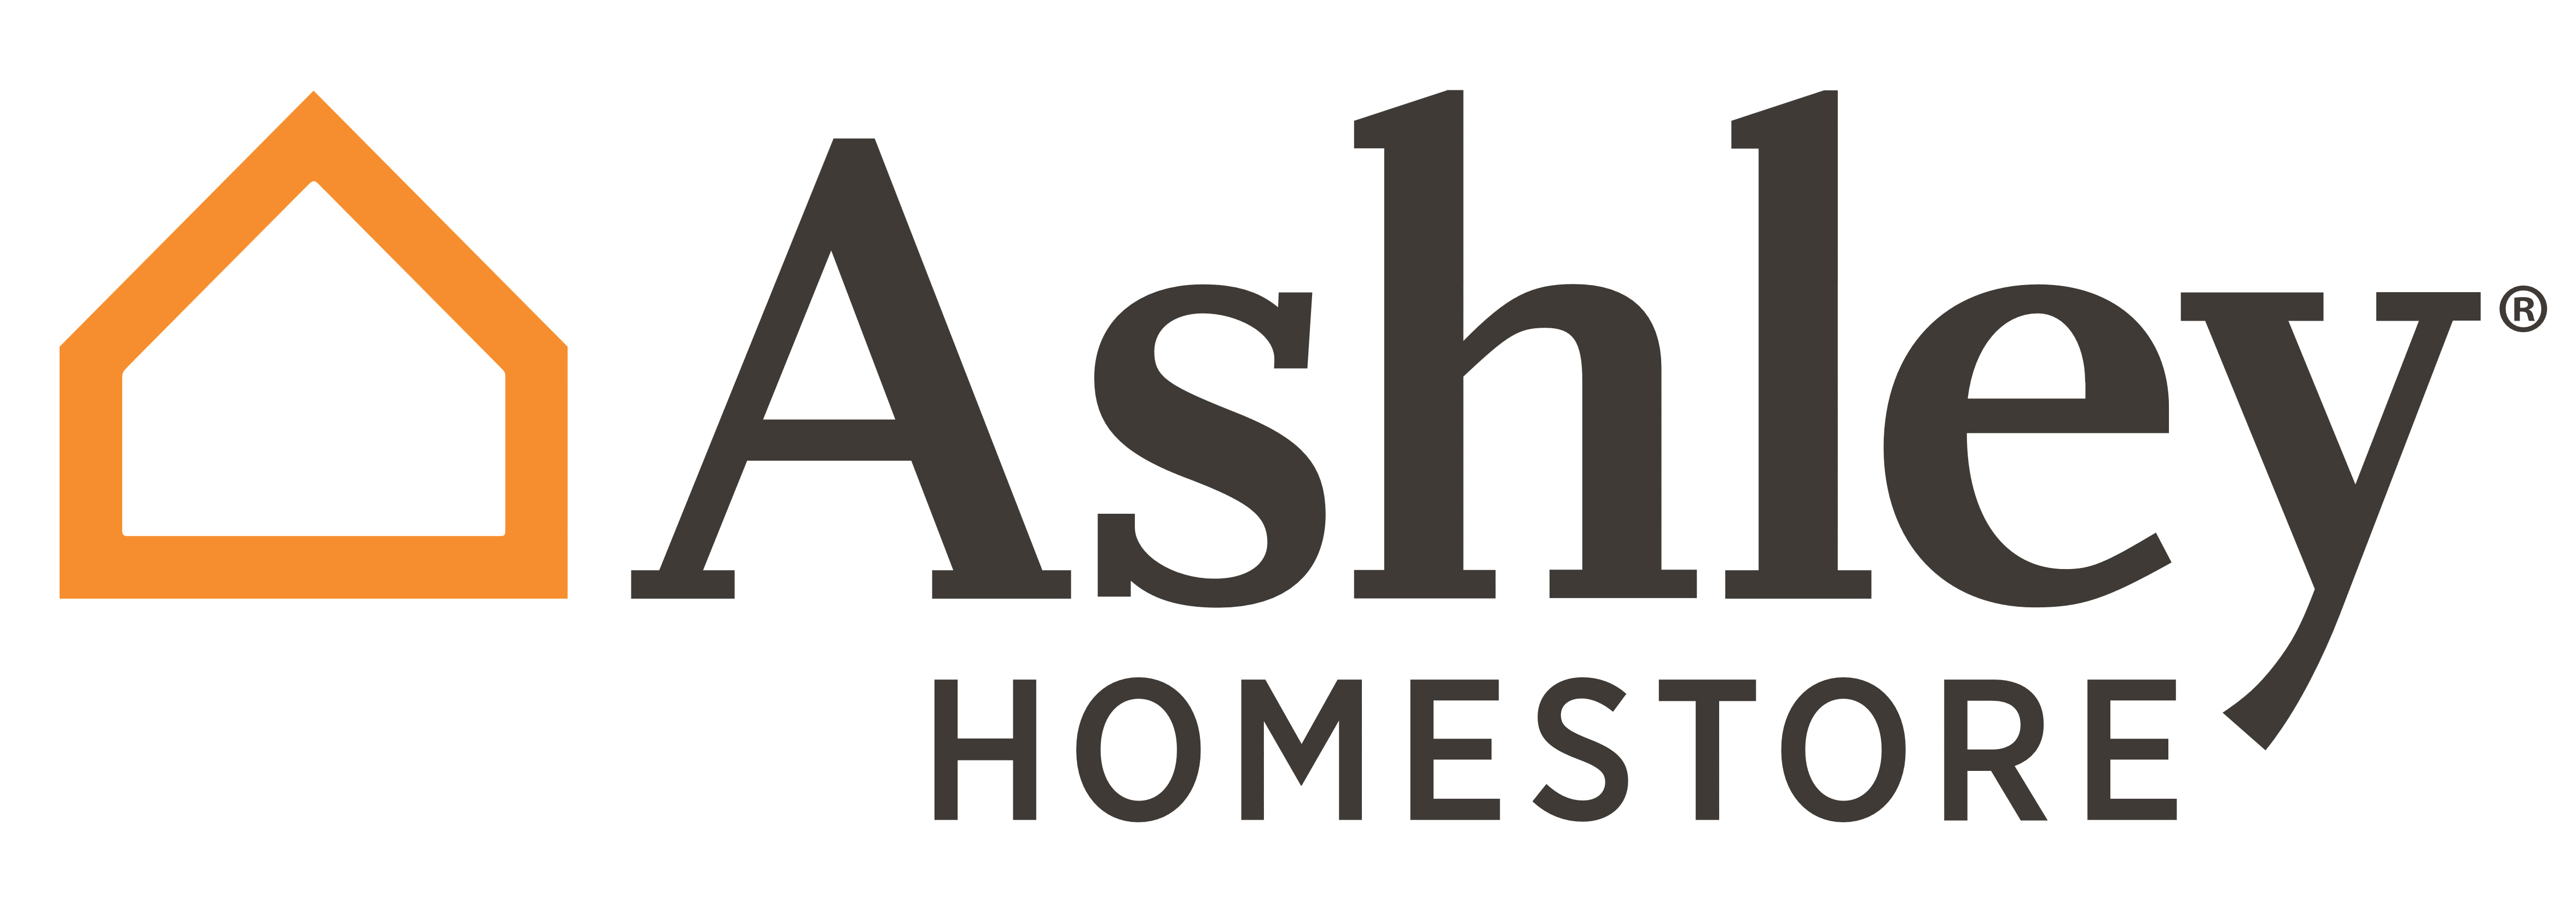 Ashley_Homestore_logo1.jpg